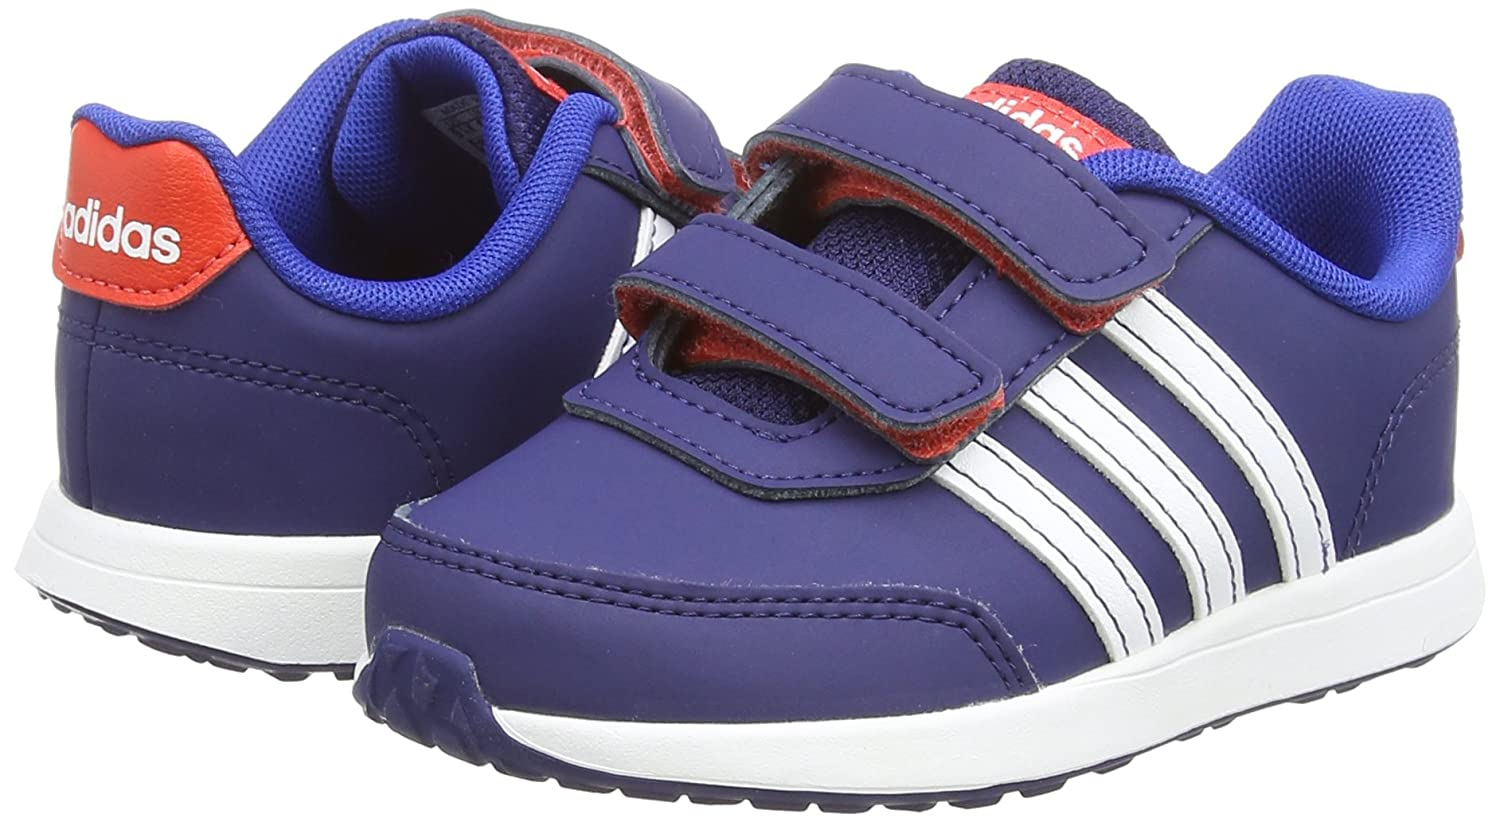 5976b8514c adidas Unisex-Kinder Vs Switch 2 CMF Inf Fitnessschuhe - template ...